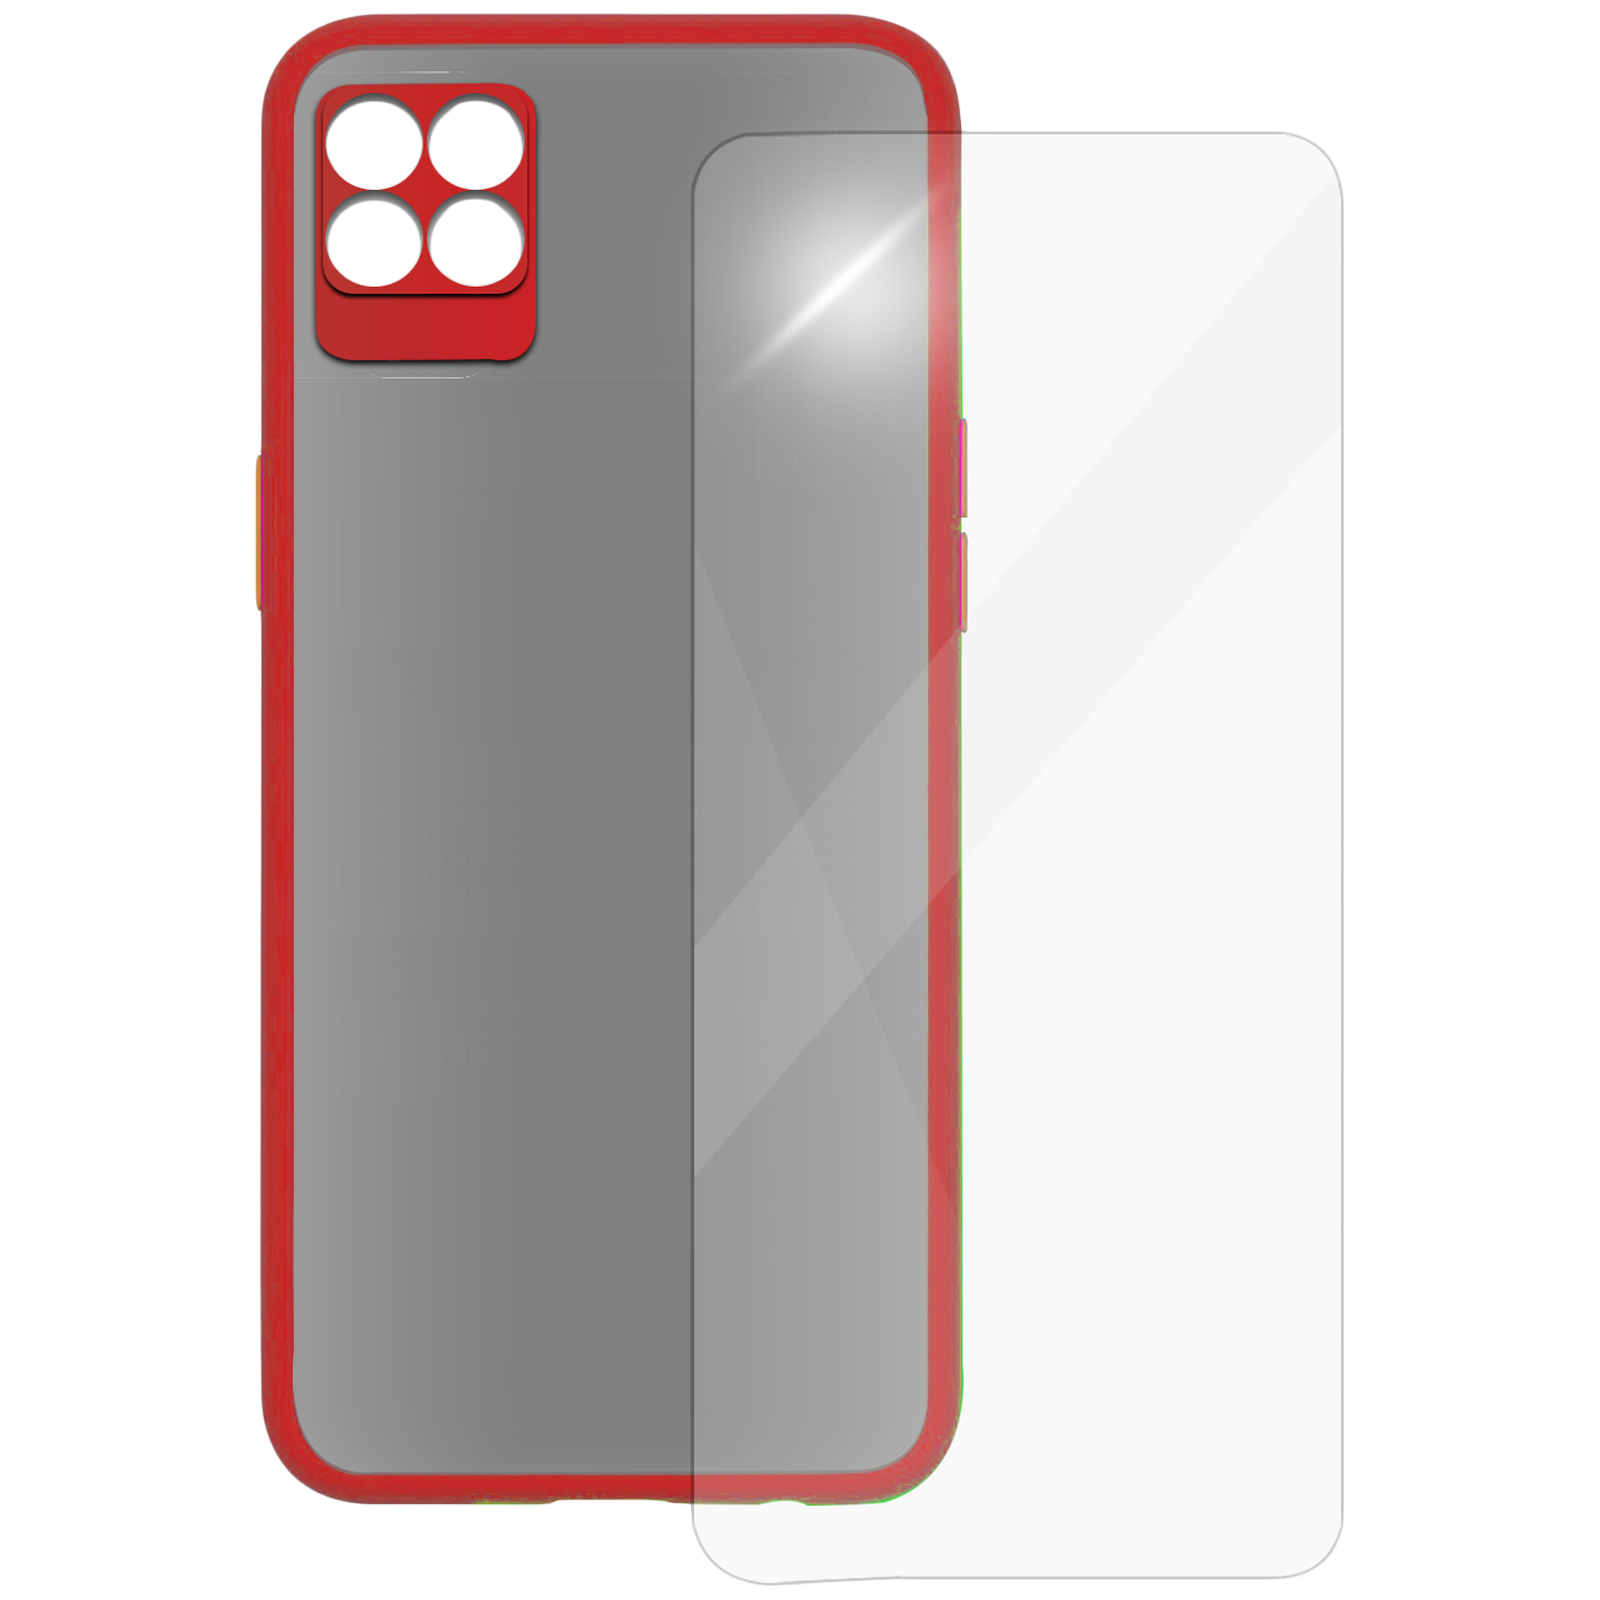 Arrow Camera Duplex Back Case and Screen Protector Bundle For Realme 8 Pro (Ultra Transparent Visibility, AR-1045, Red)_1